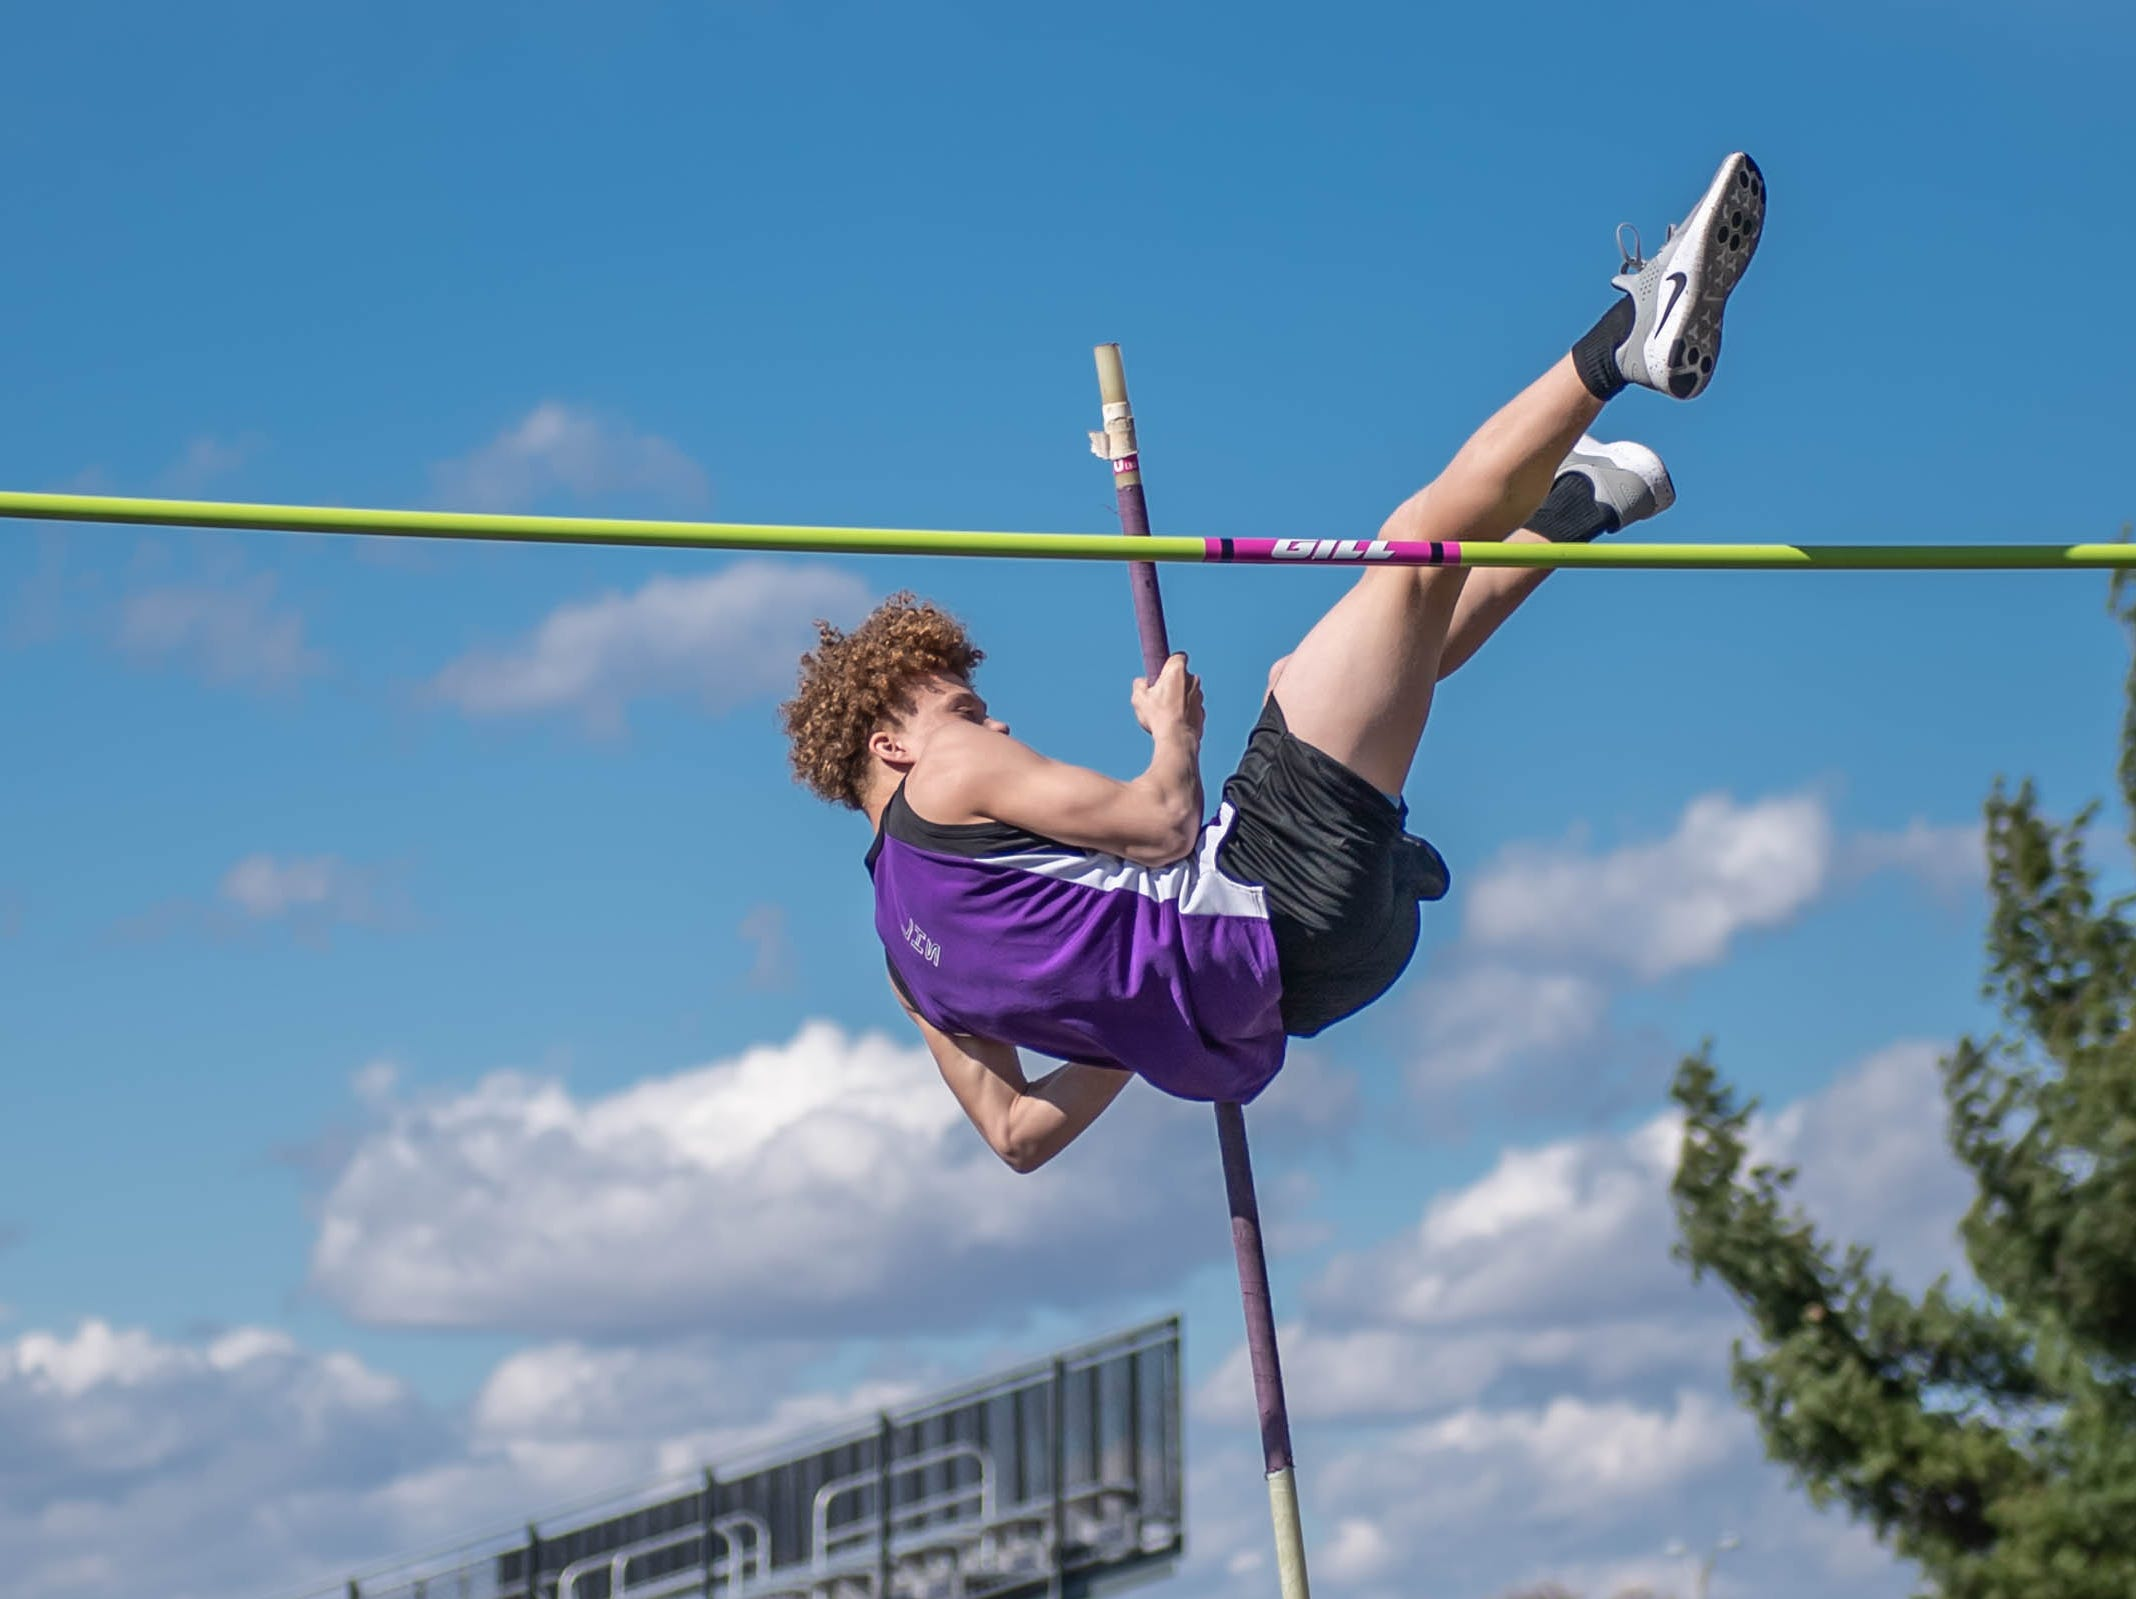 Lakeview's Bomani Guy competes in the pole vault at Lakeview High School during a dual meet held on 4/9/19.